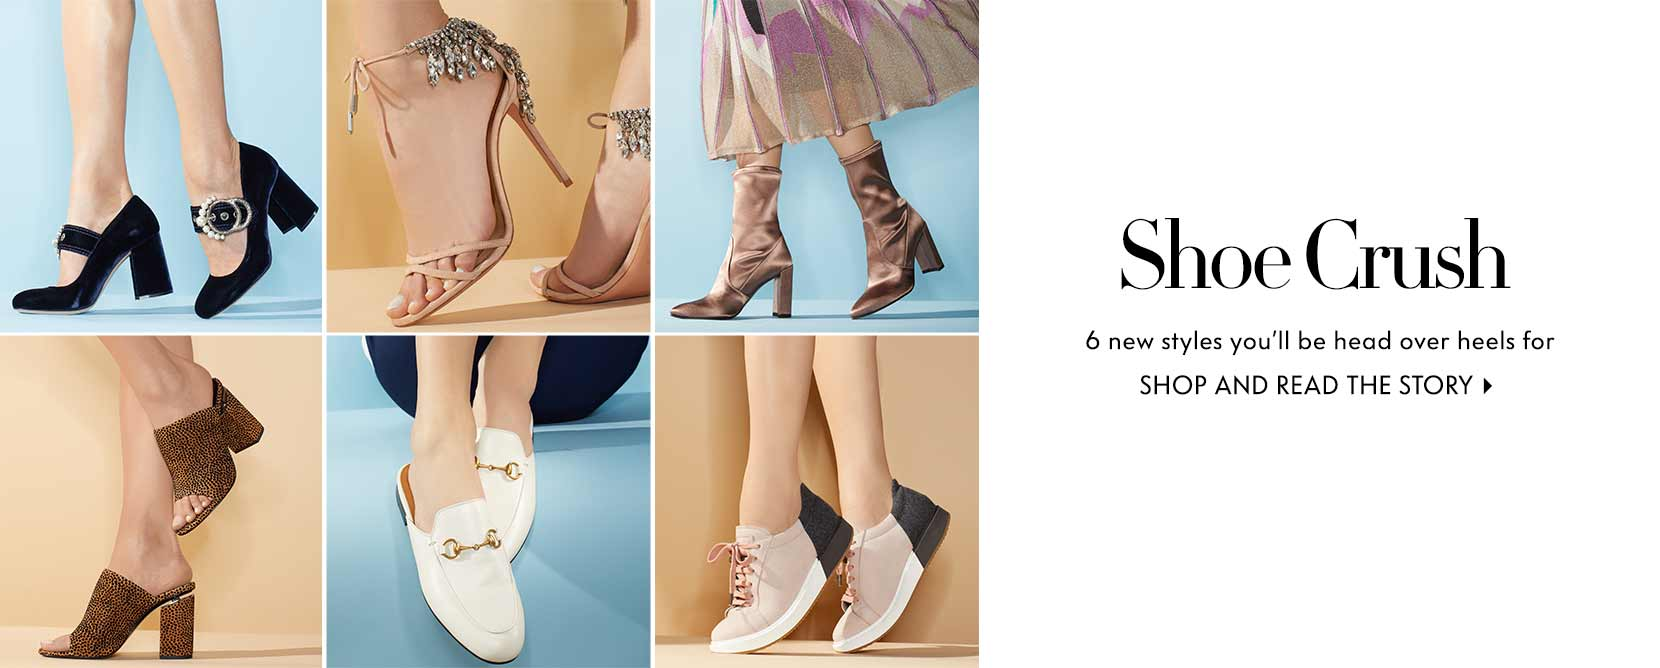 Shoe crush 6 new styles you'll be head over heels for. Shop and read the story